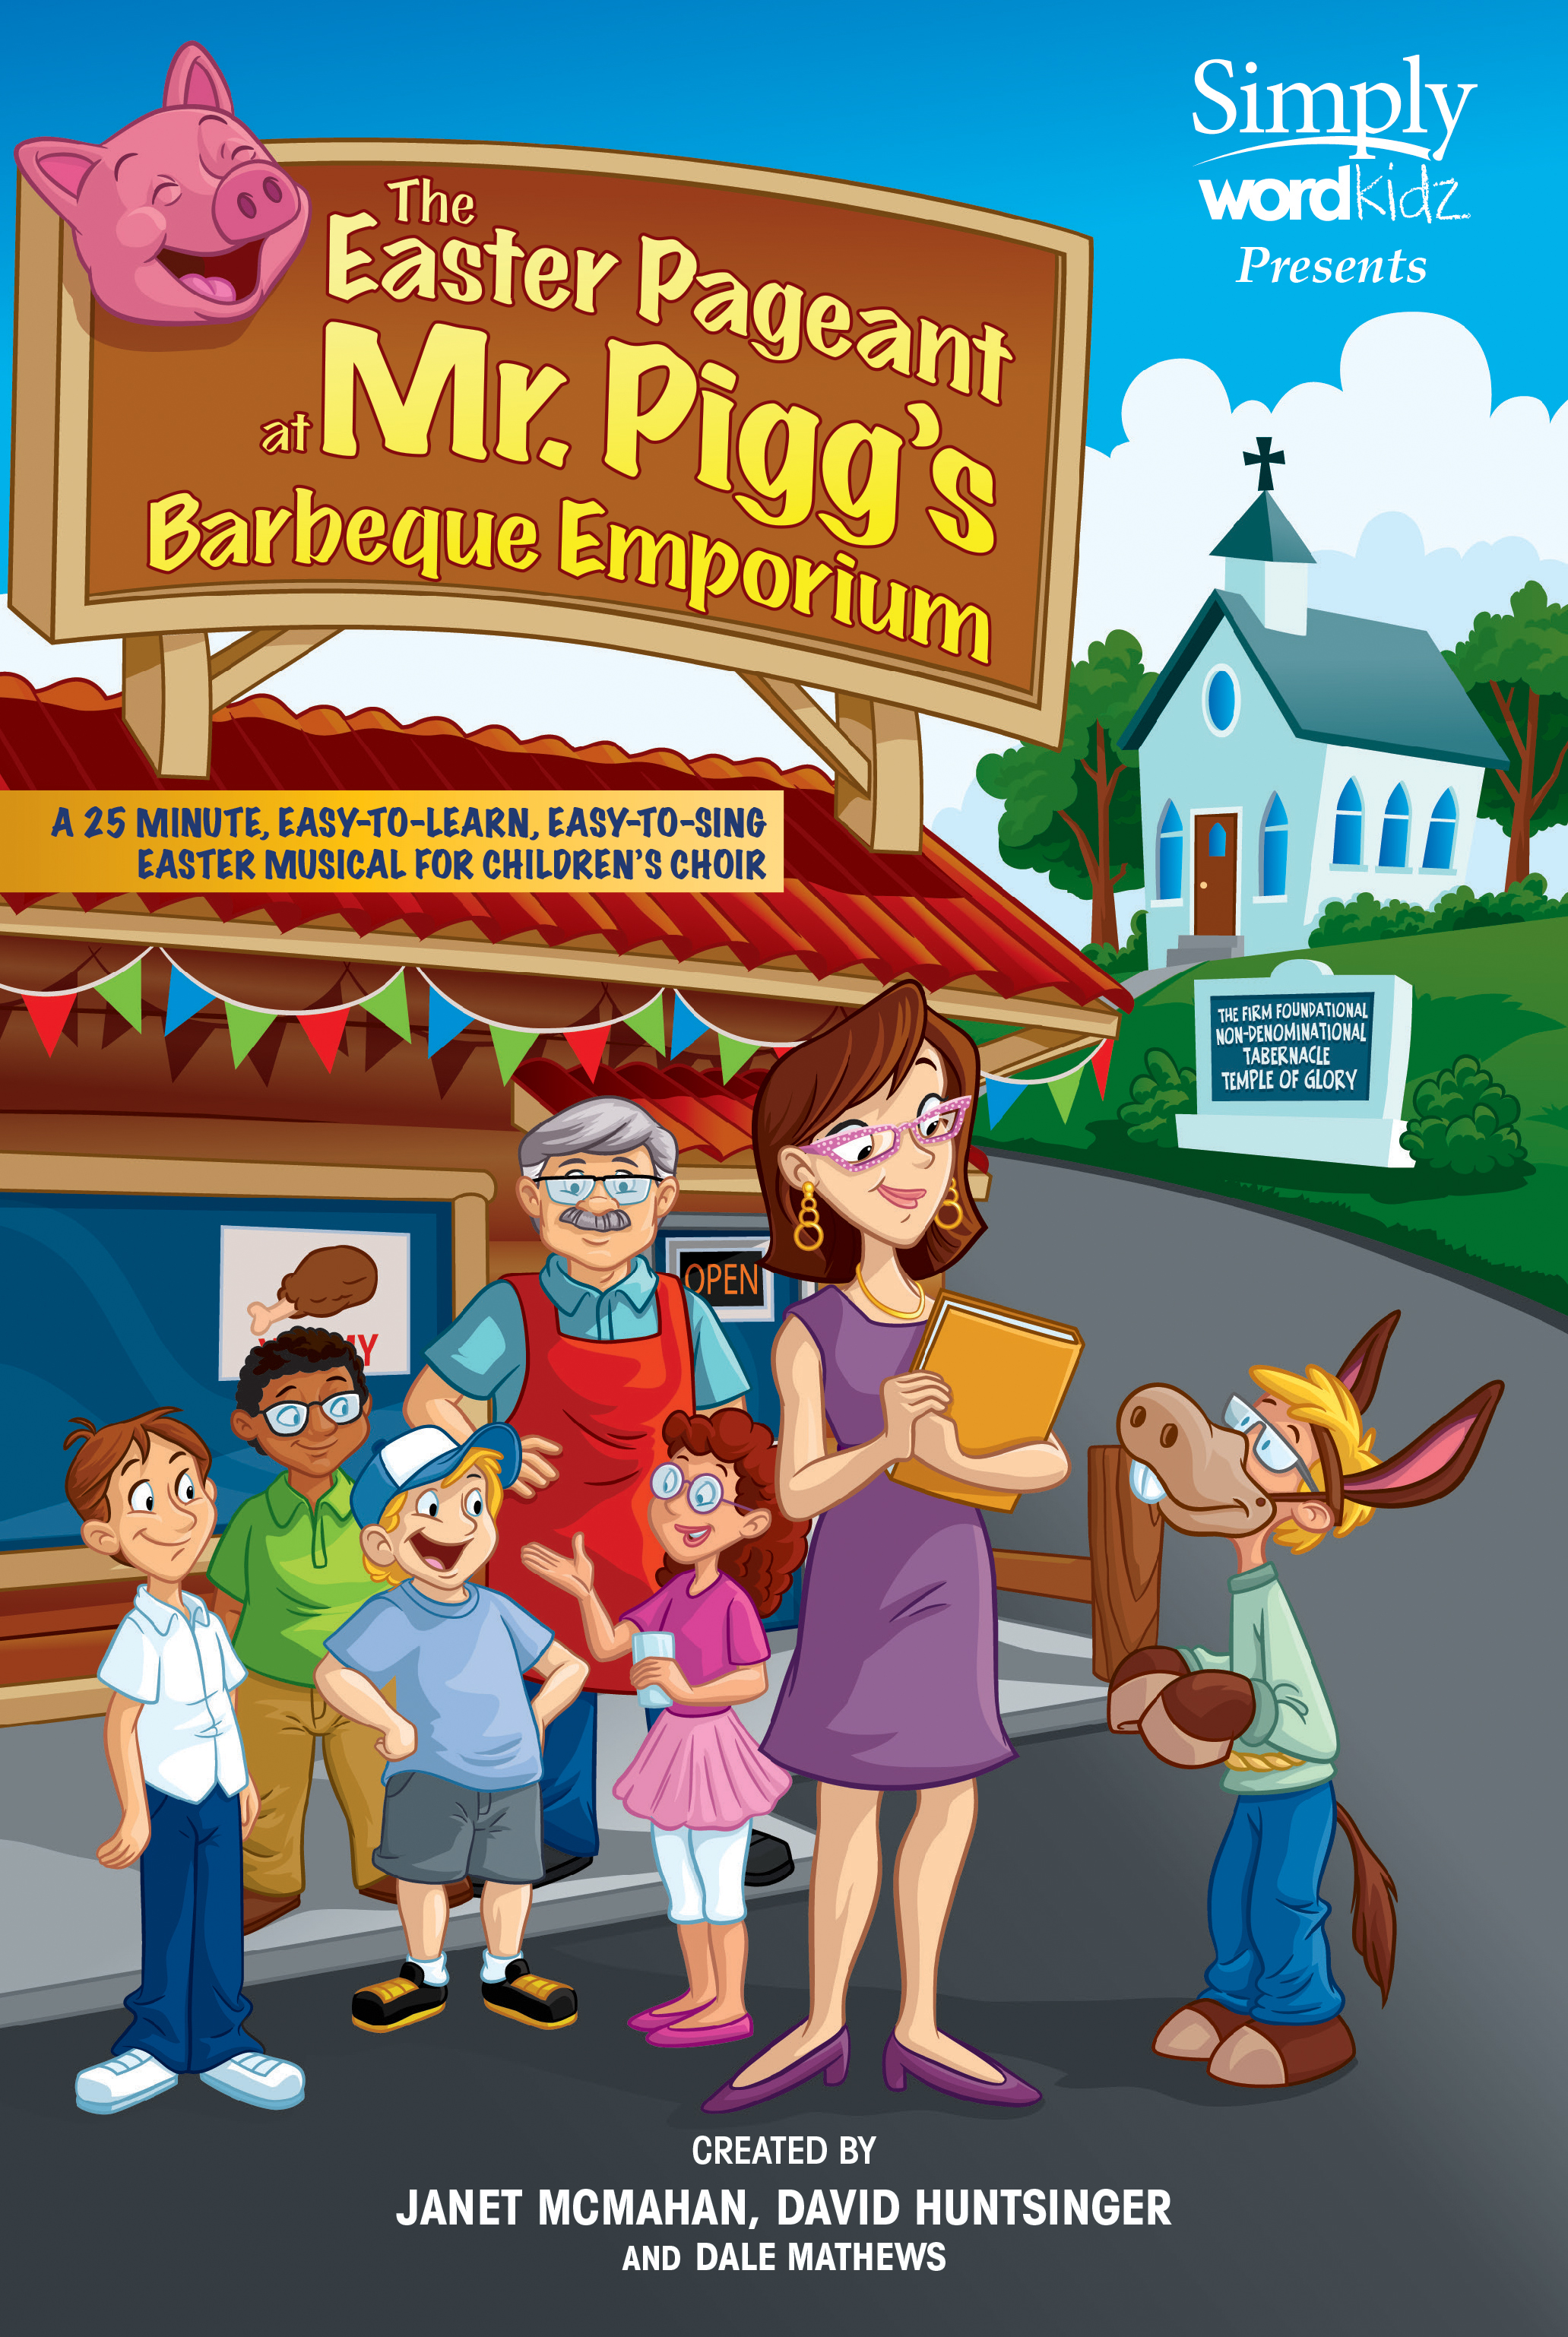 The Easter Pageant At Mr. Pigg's Barbeque Emporium